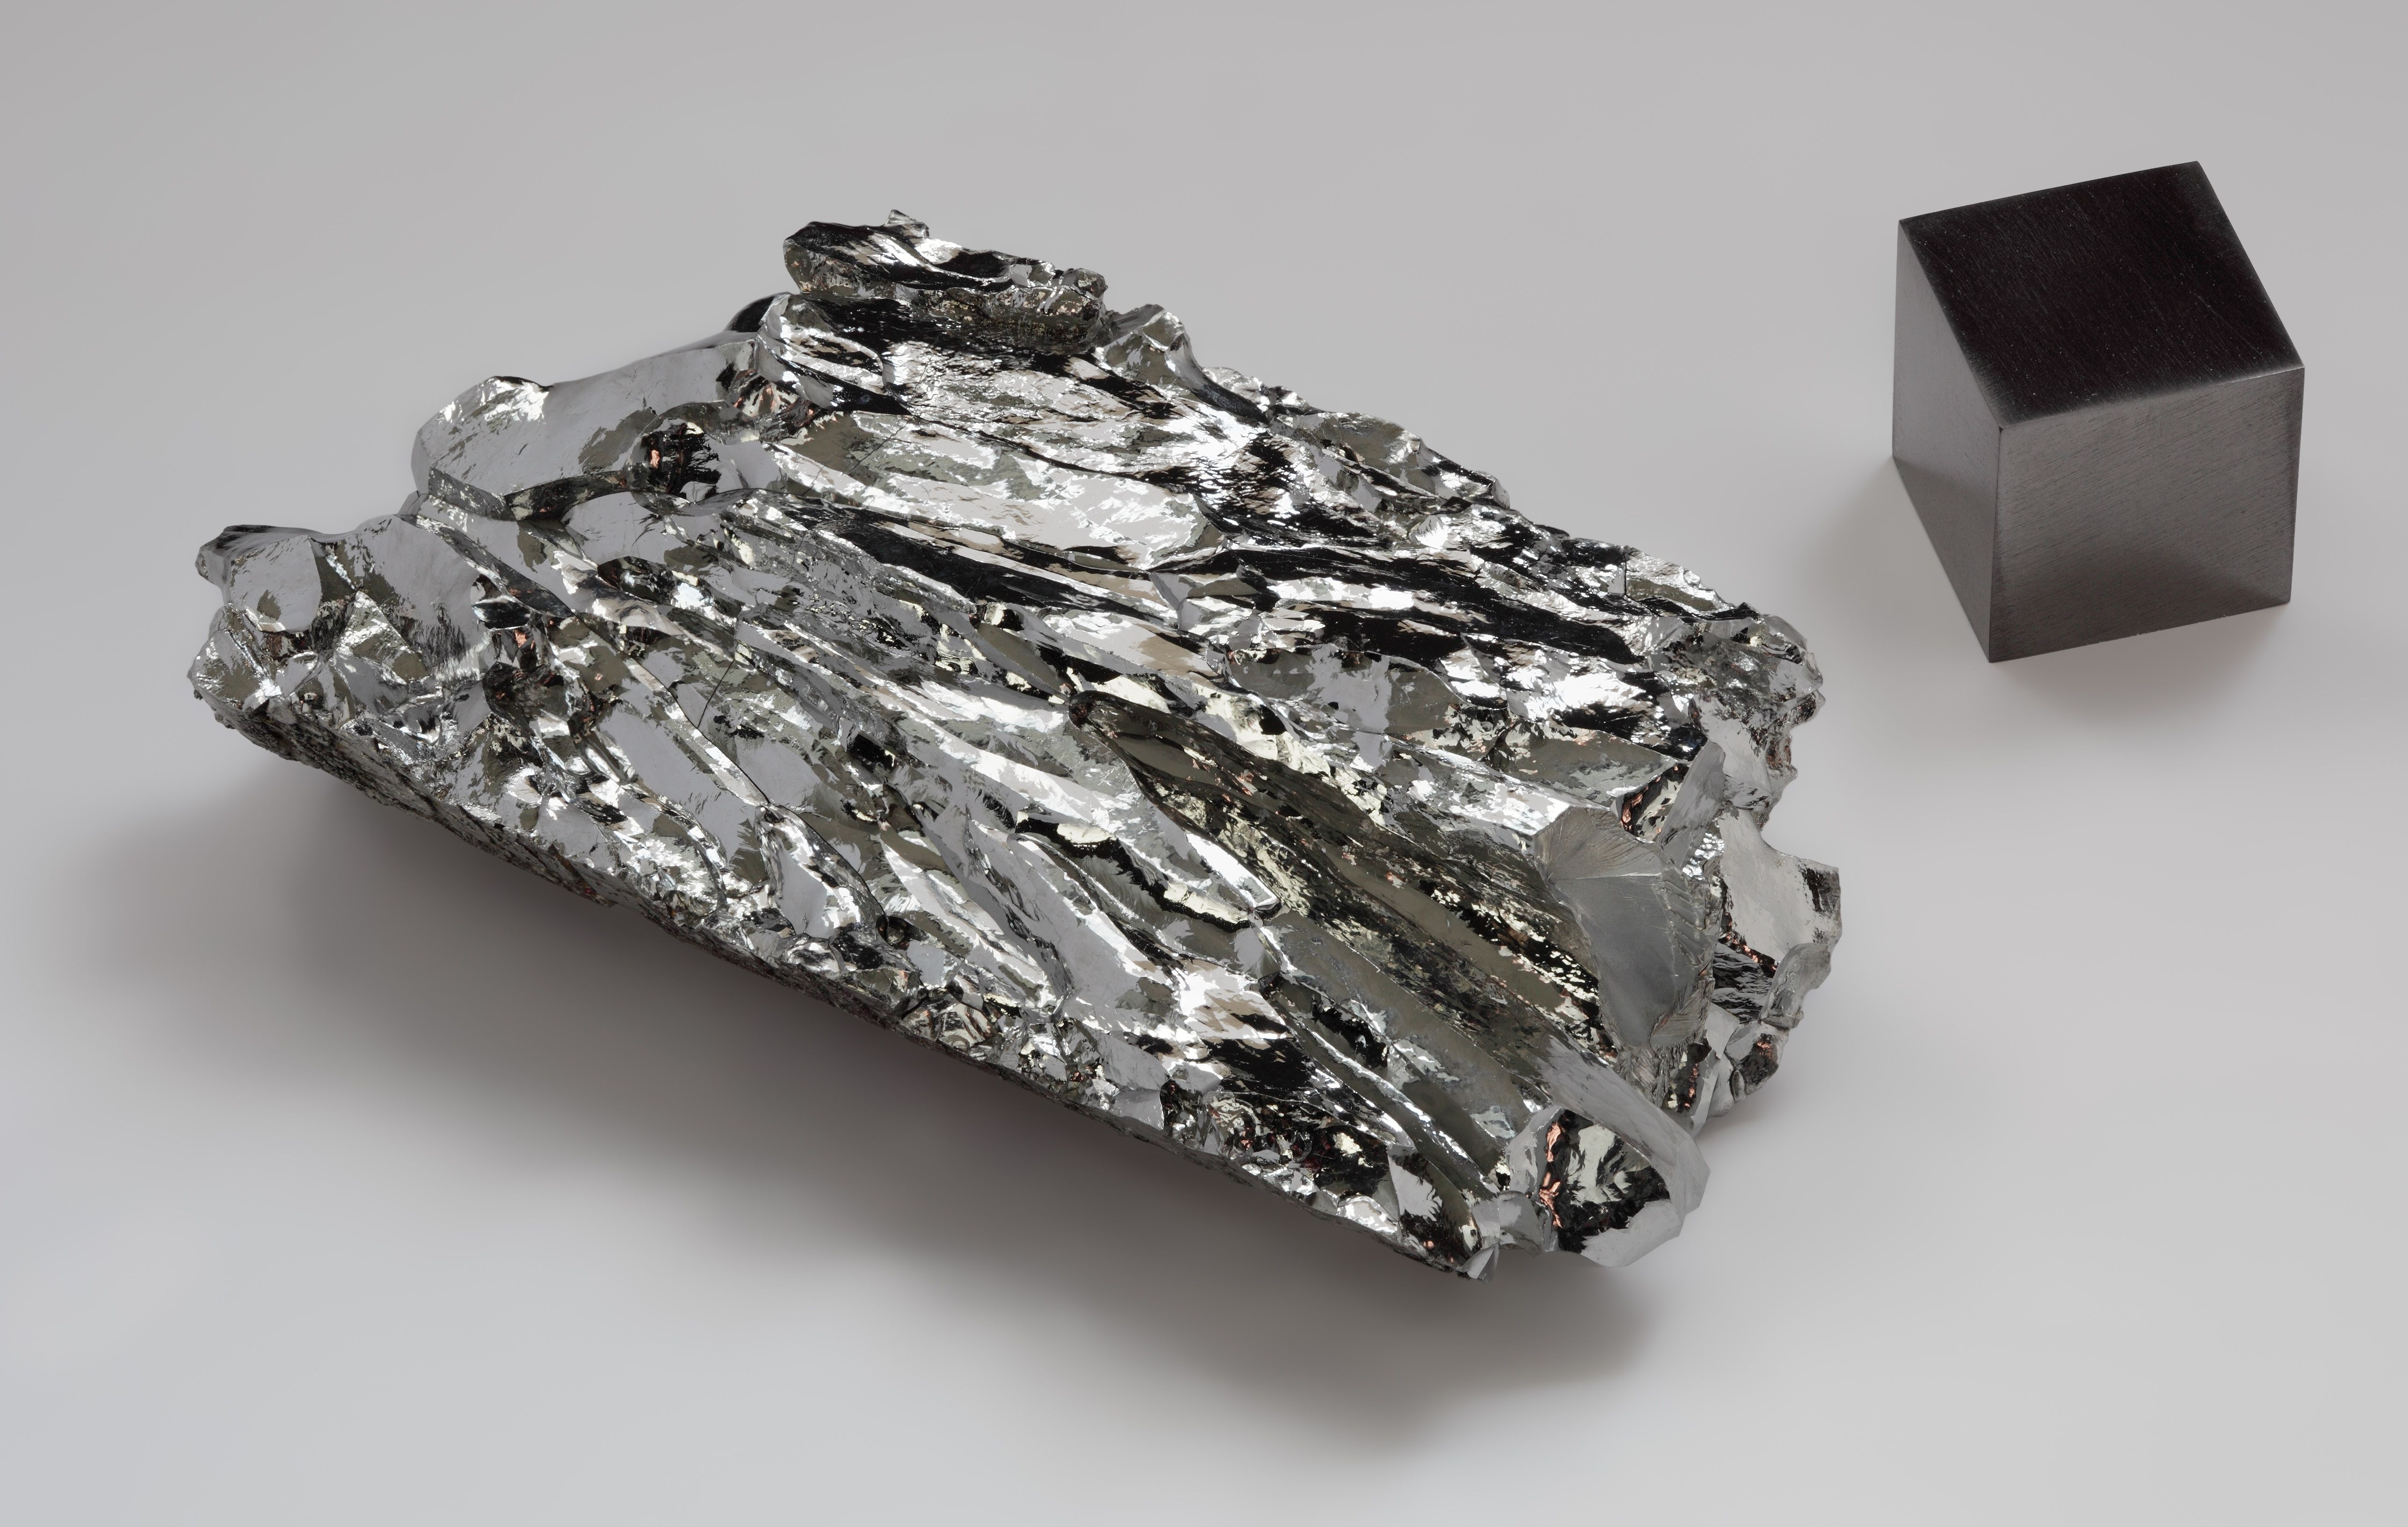 This is a photo of a piece of crystalline molybdenum and a cube of molybdenum metal.